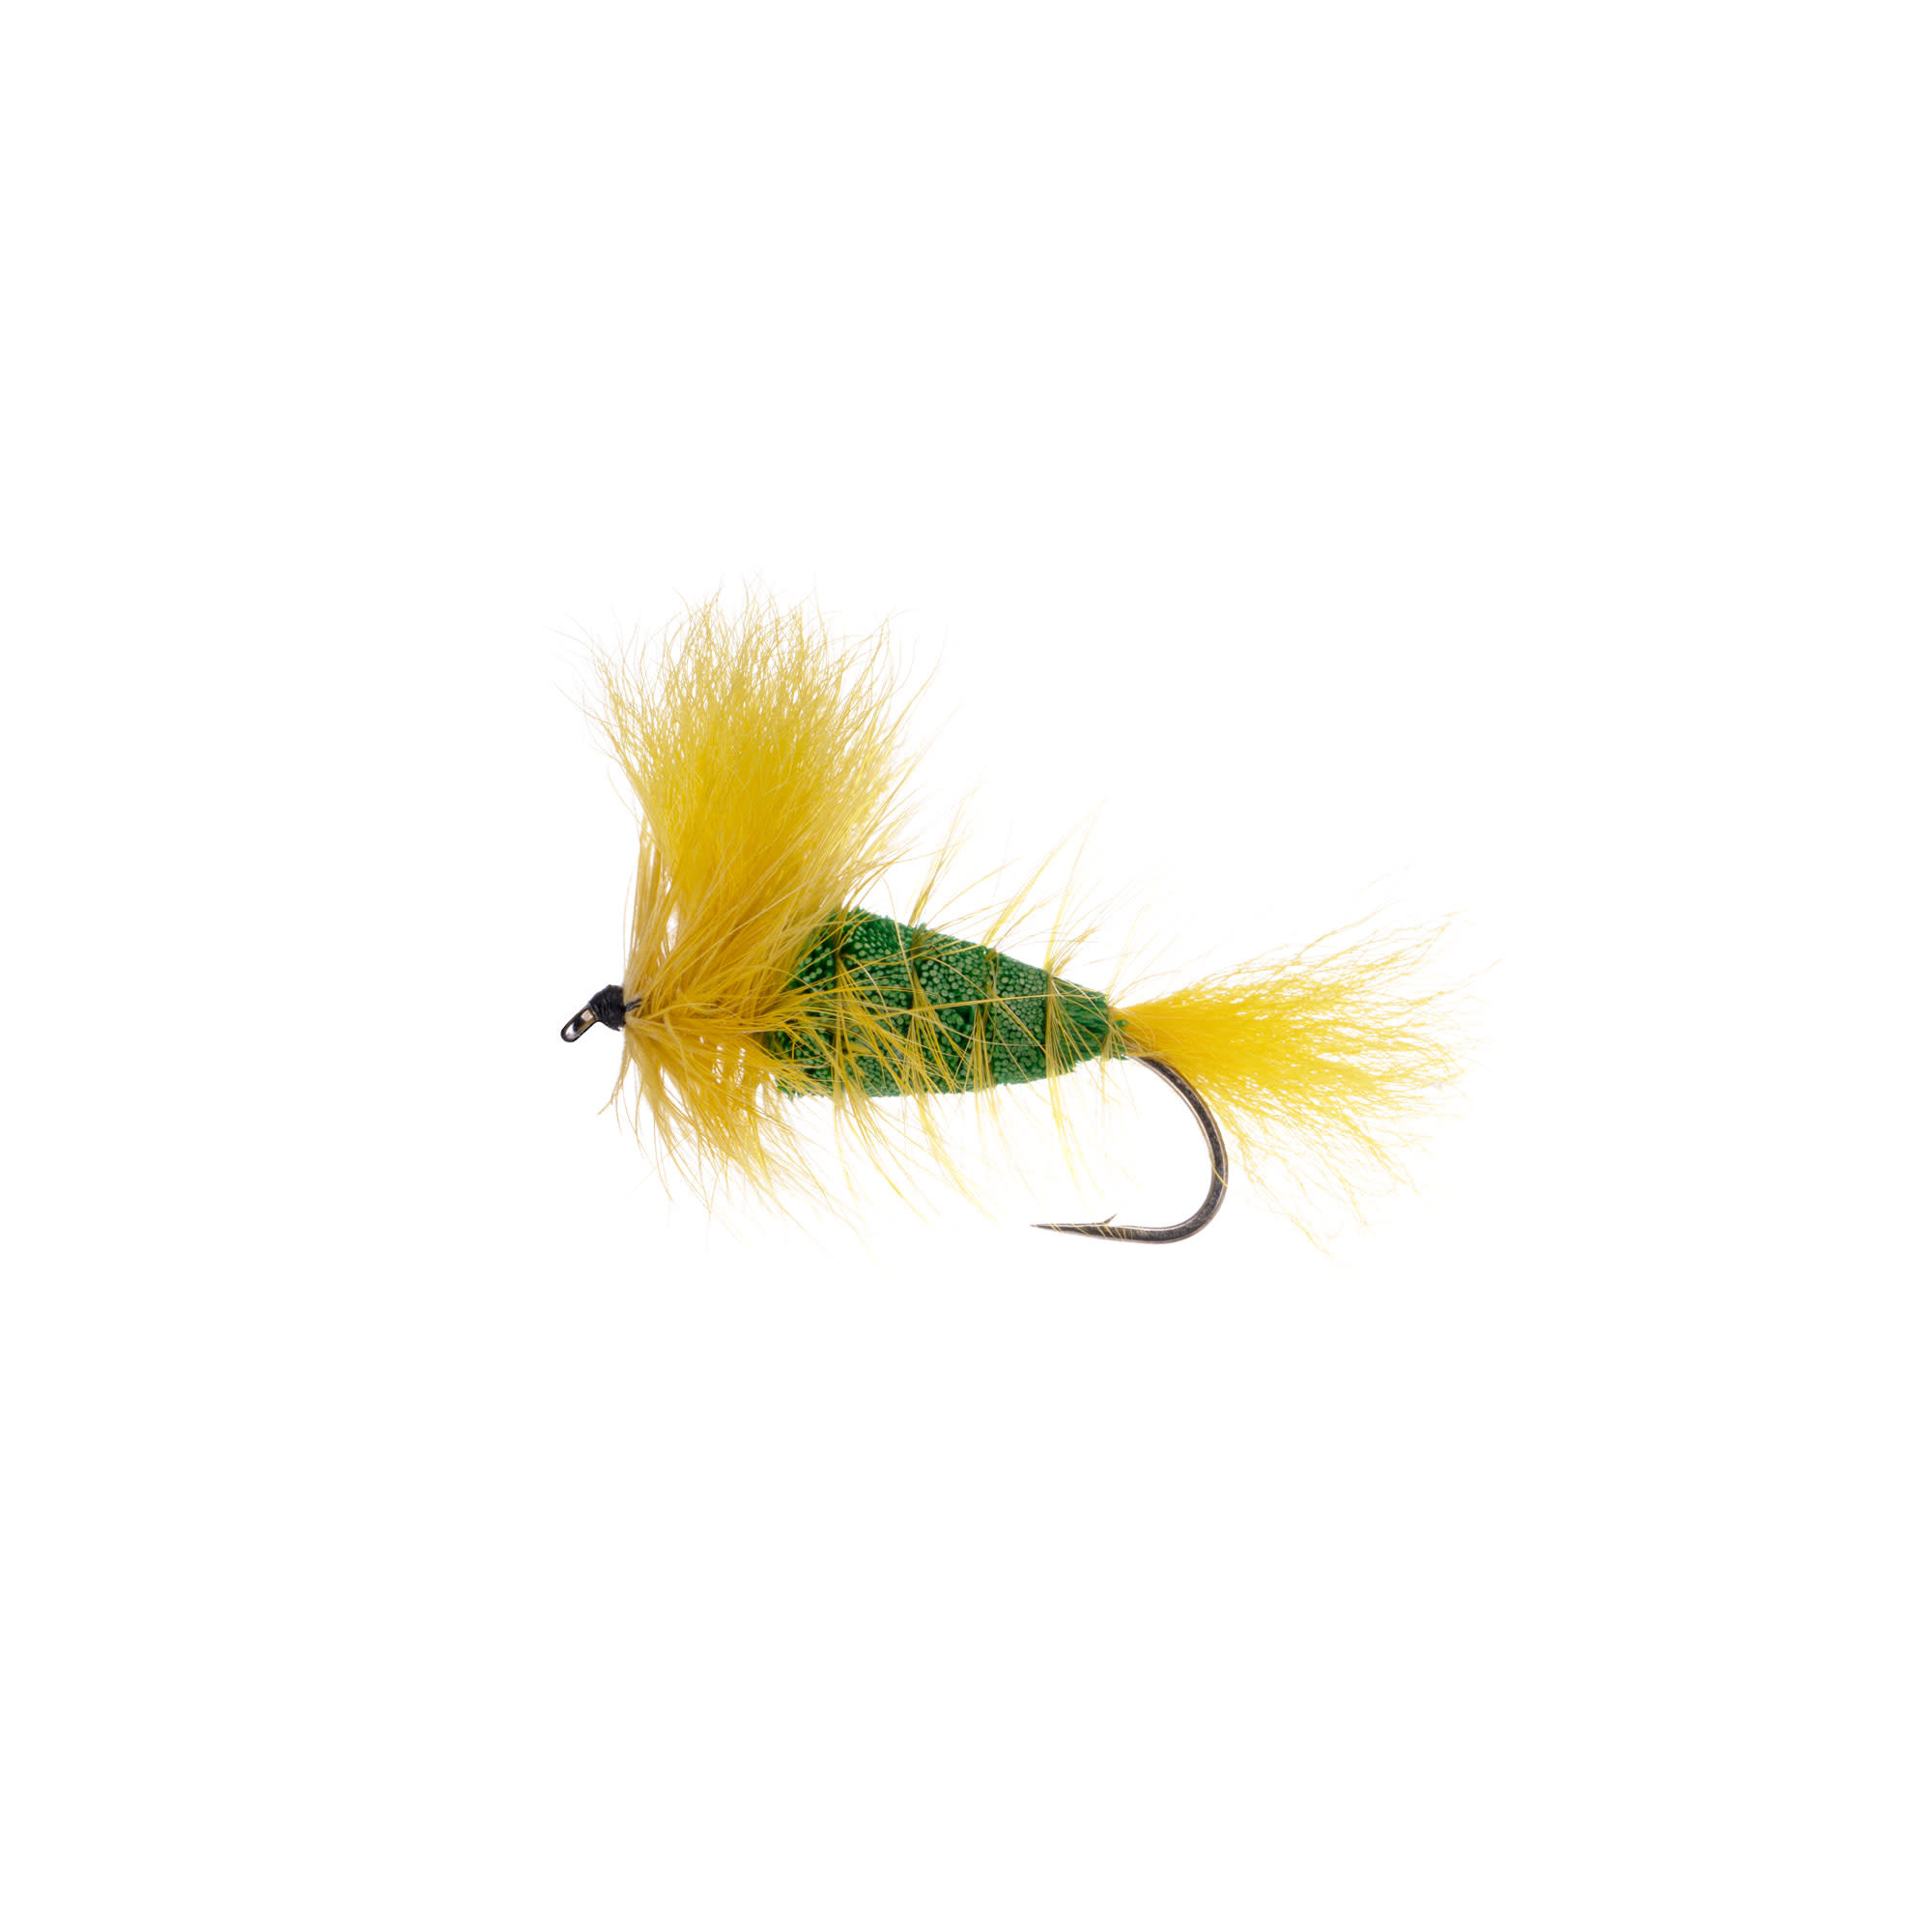 EMERALD GREEN-Yellow Tail-Yellow Hackle (Wulff Bomber) #4